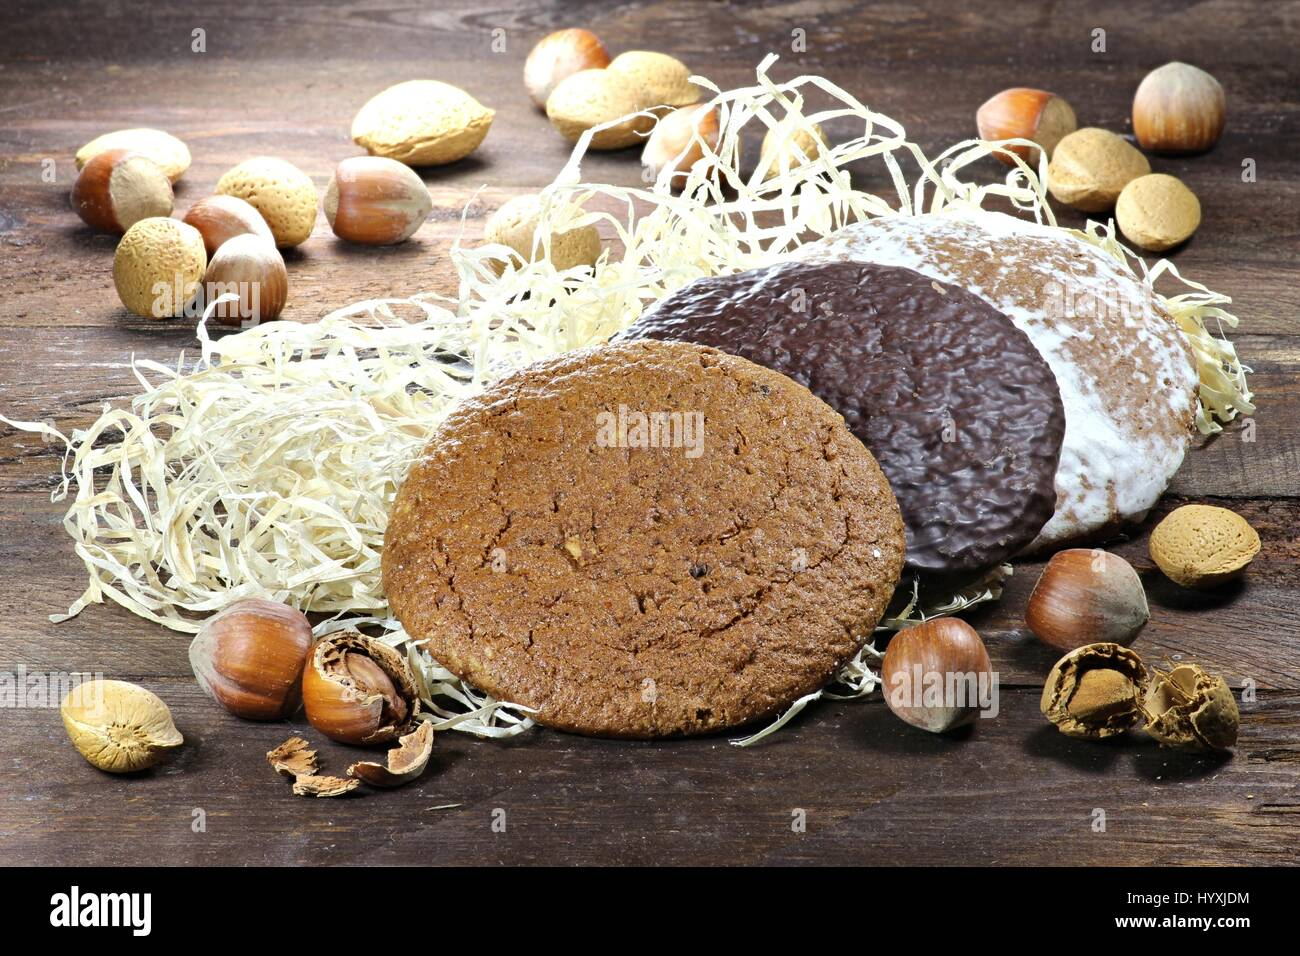 Gingerbread made in Nuremberg. Nuremberg is a city in Germany and well-known for its gingerbread skilled crafts - Stock Image